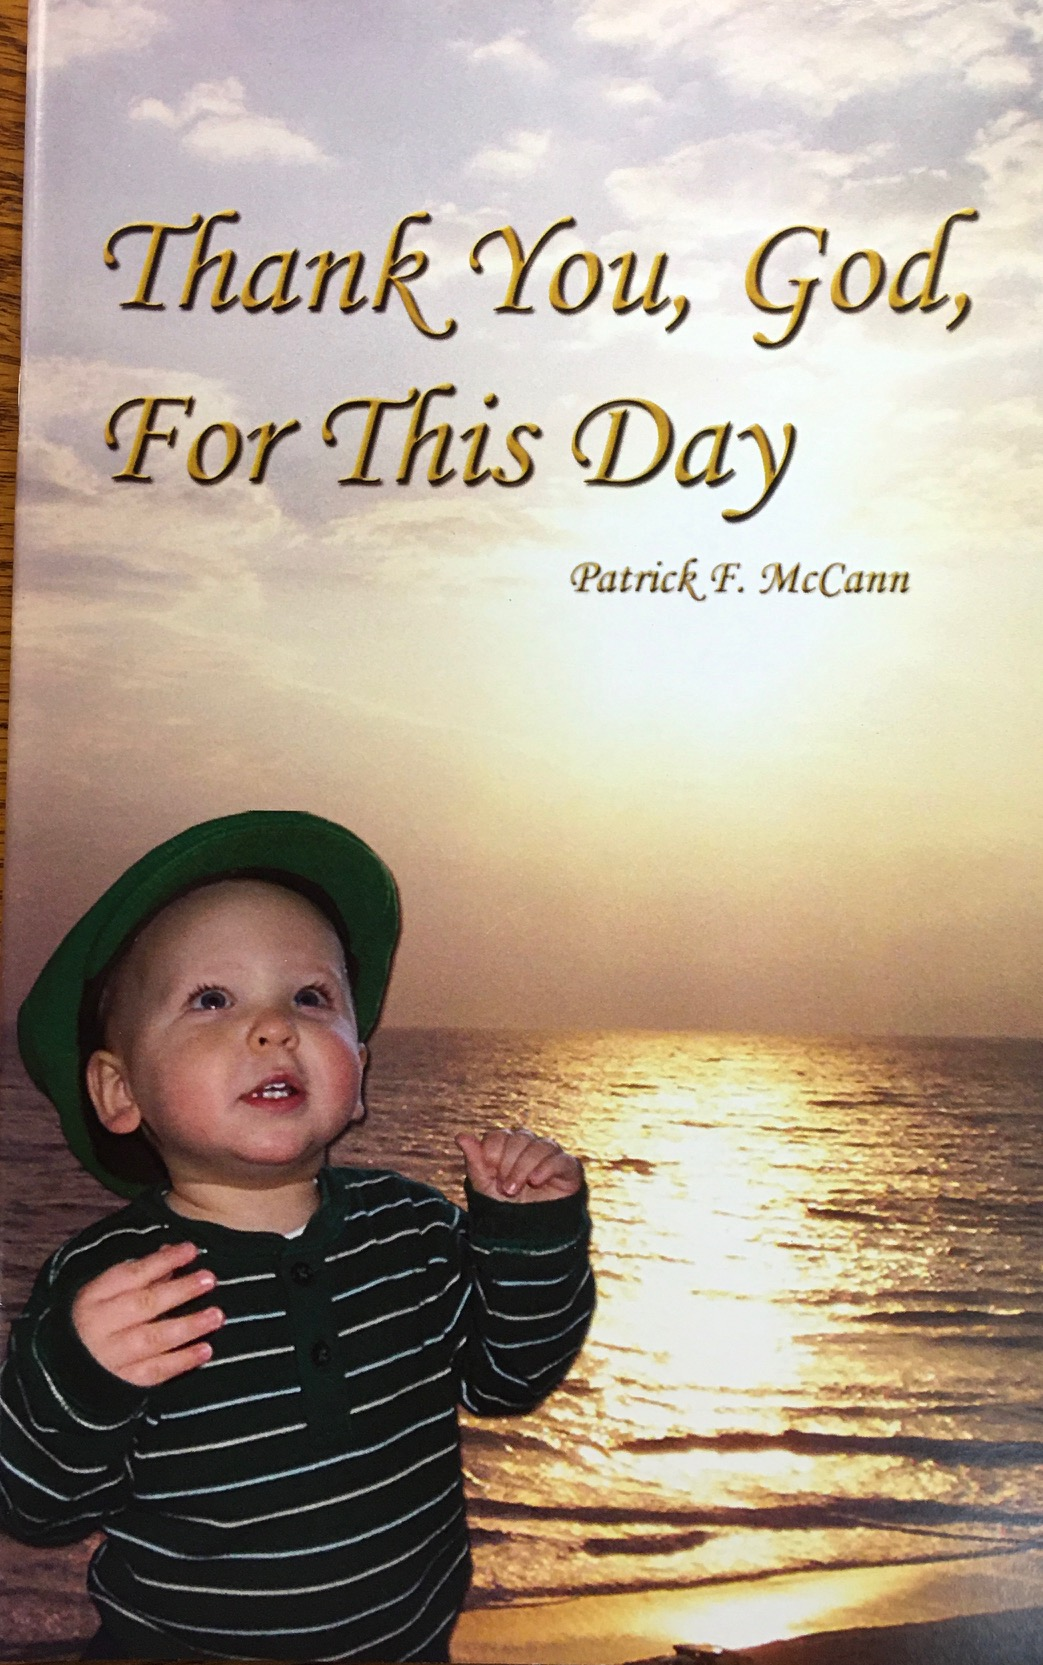 Image for Thank You, God, For This Day: A book of inspiration, reflection, faith, hope and charity